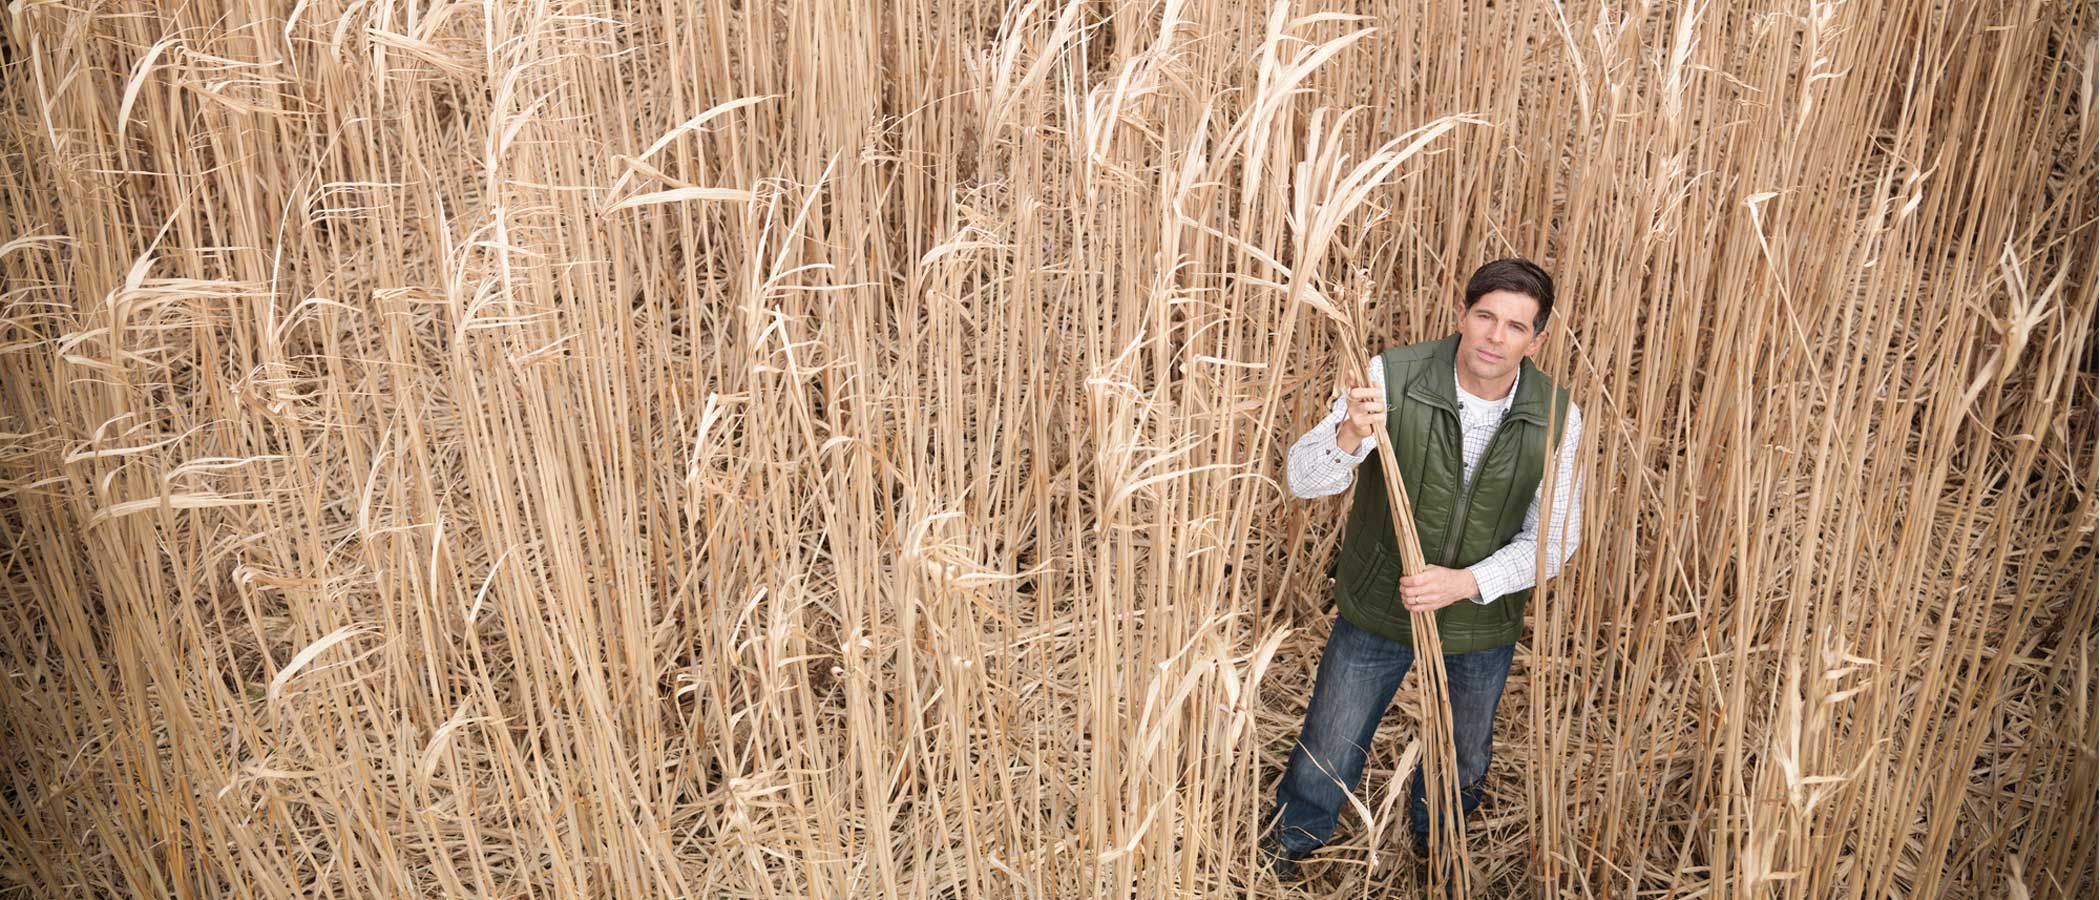 Farmer in a field of Miscanthus at harvest time.